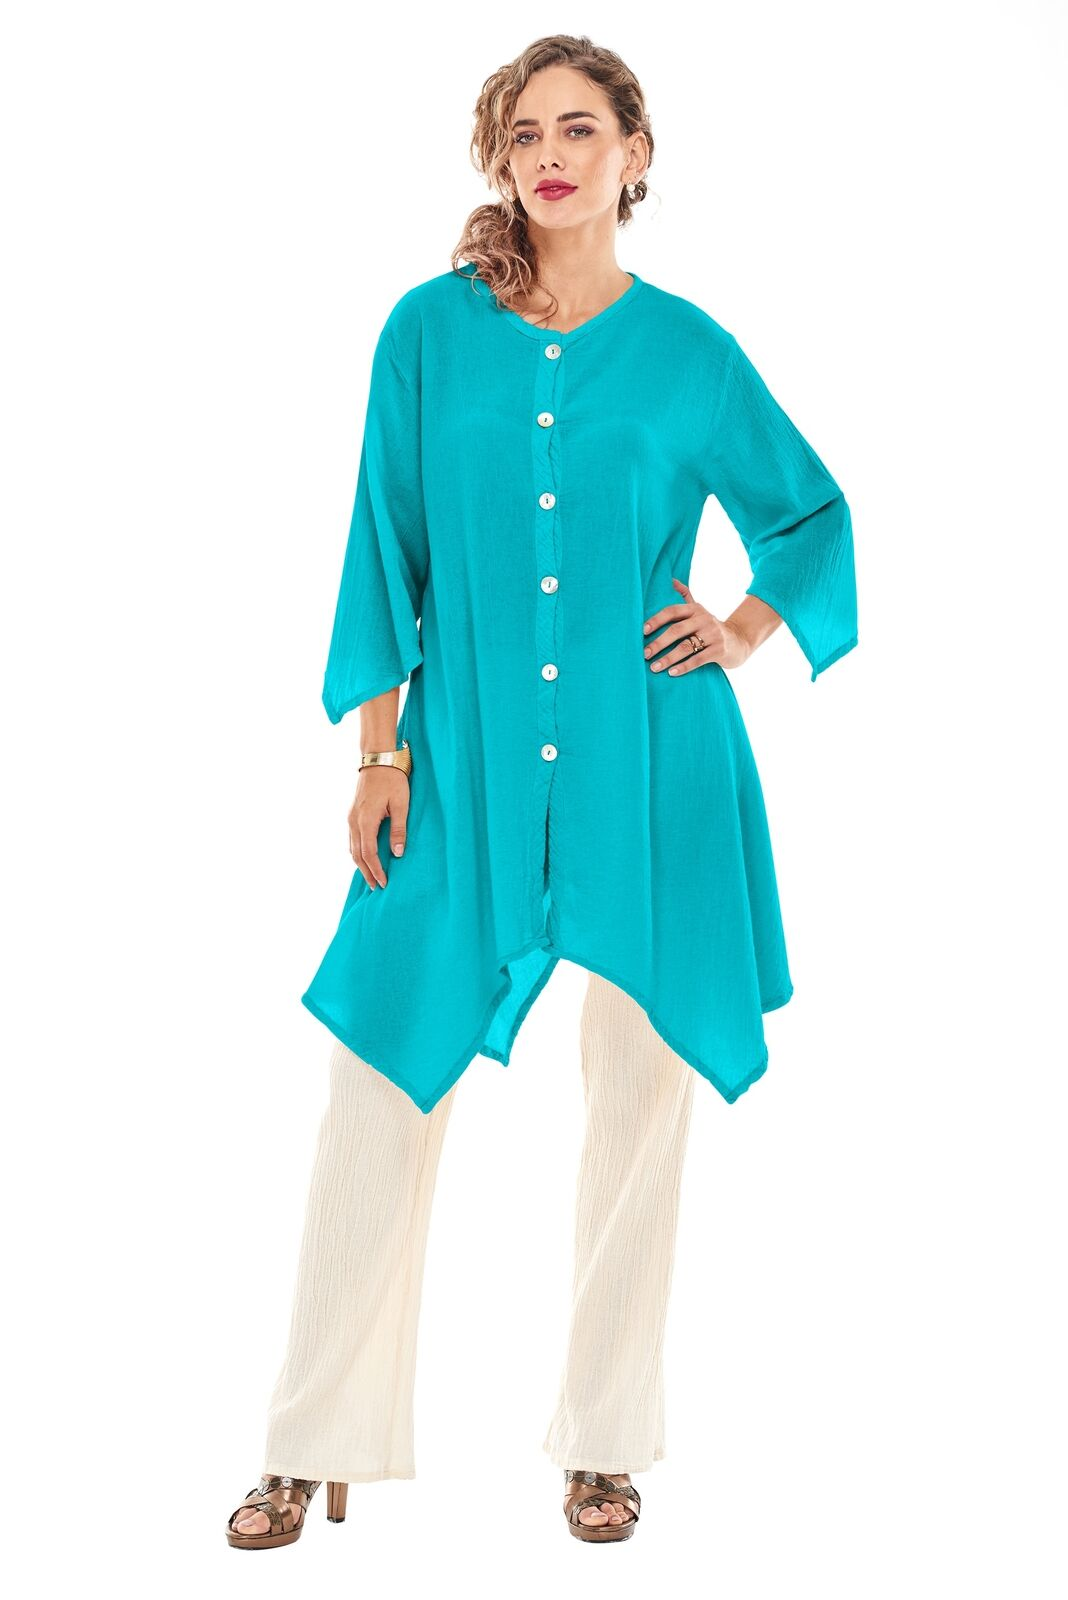 OMG - A simple button down cotton gauze jacket with long sides.  It is often worn as a top!